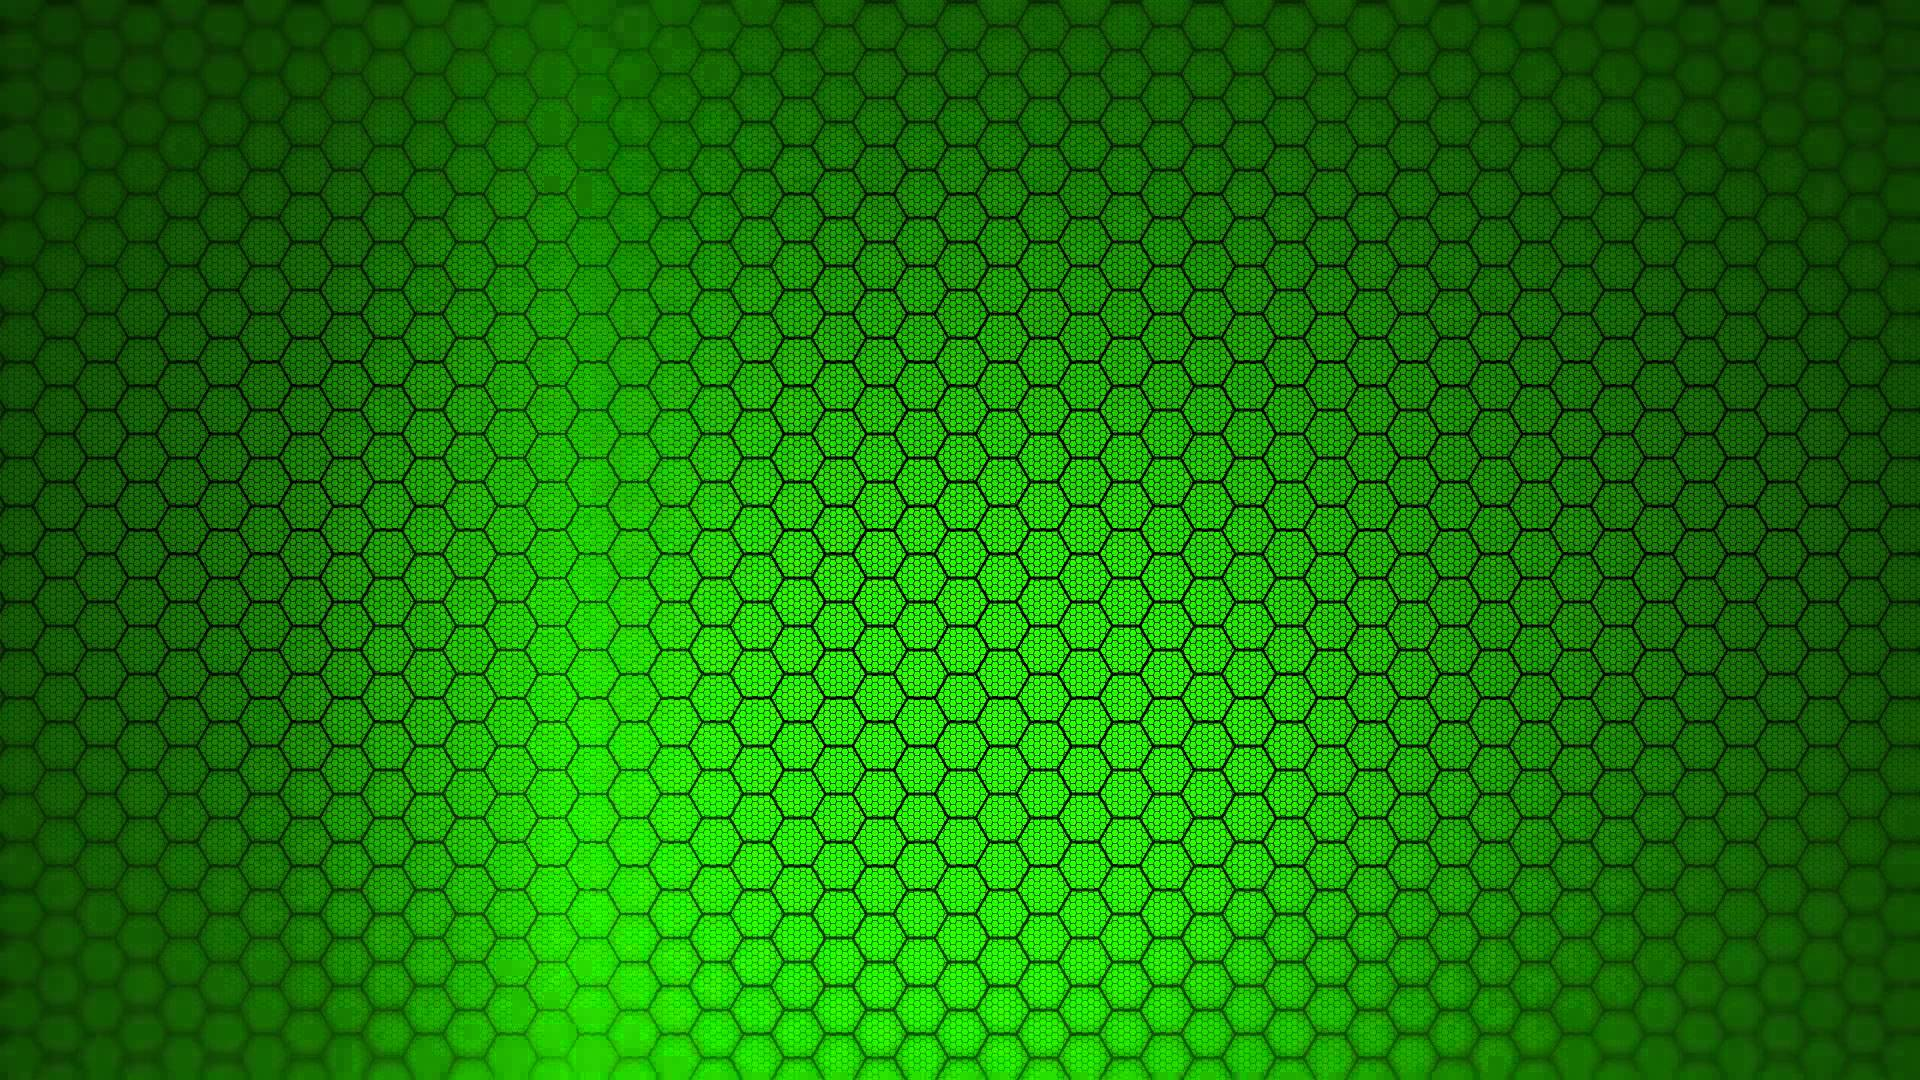 Cool Neon Cars Wallpapers Green Background 05 1920x1080